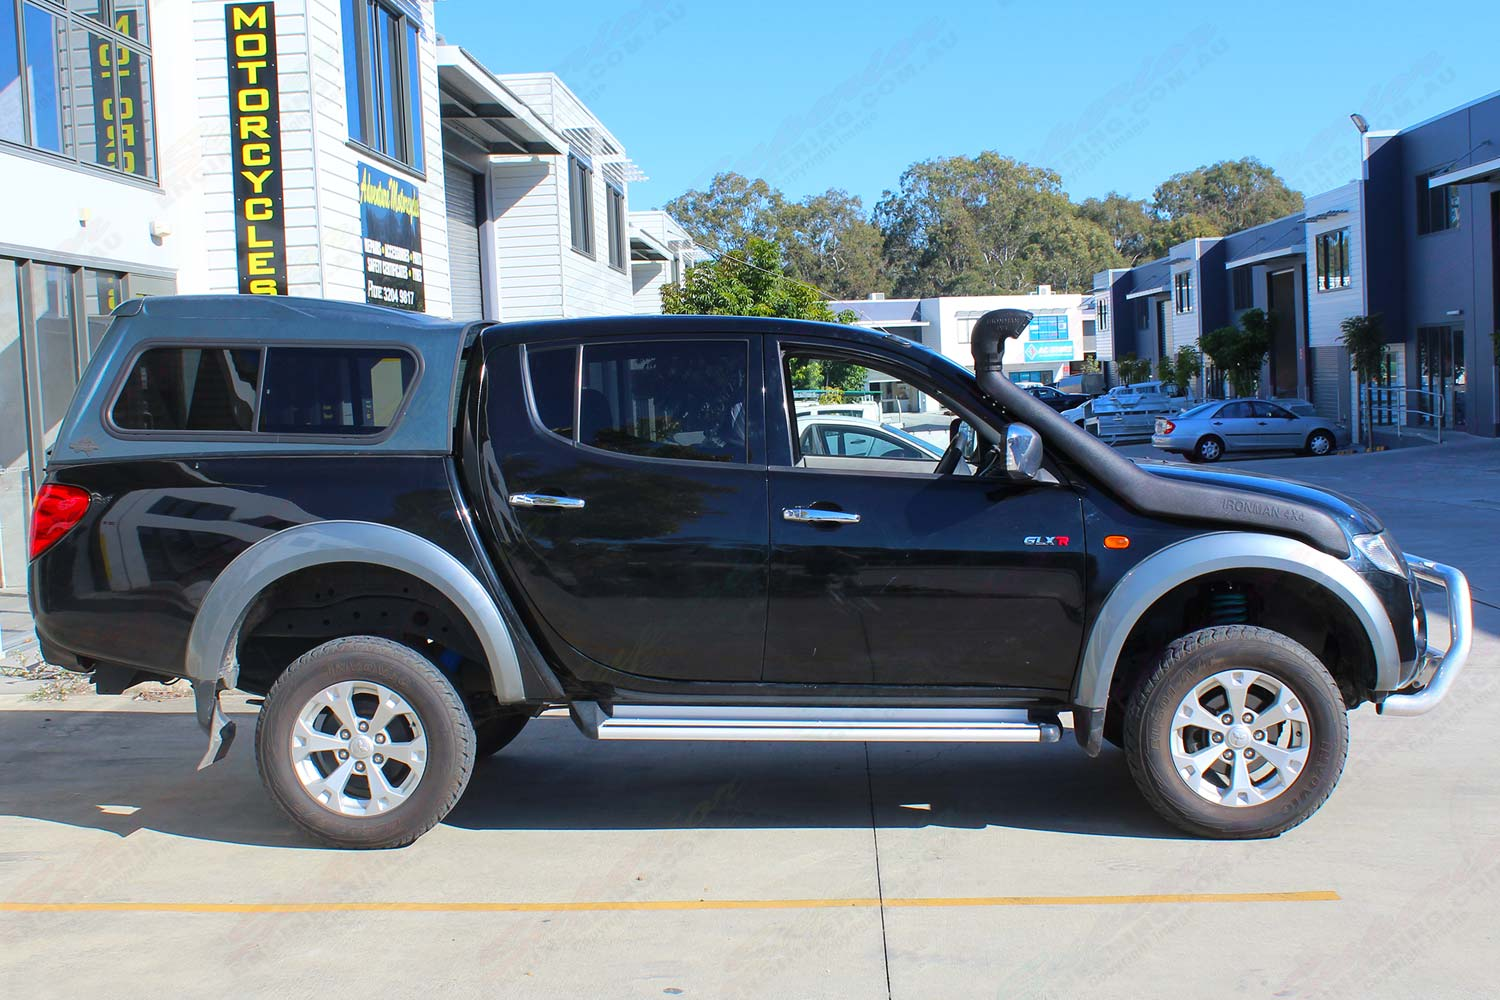 Right side view of a black ML Mitsubishi Triton (Dual Cab) fitted with an Ironman Bullbar and Snorkel, Superior Shocks and Dobinsons Springs